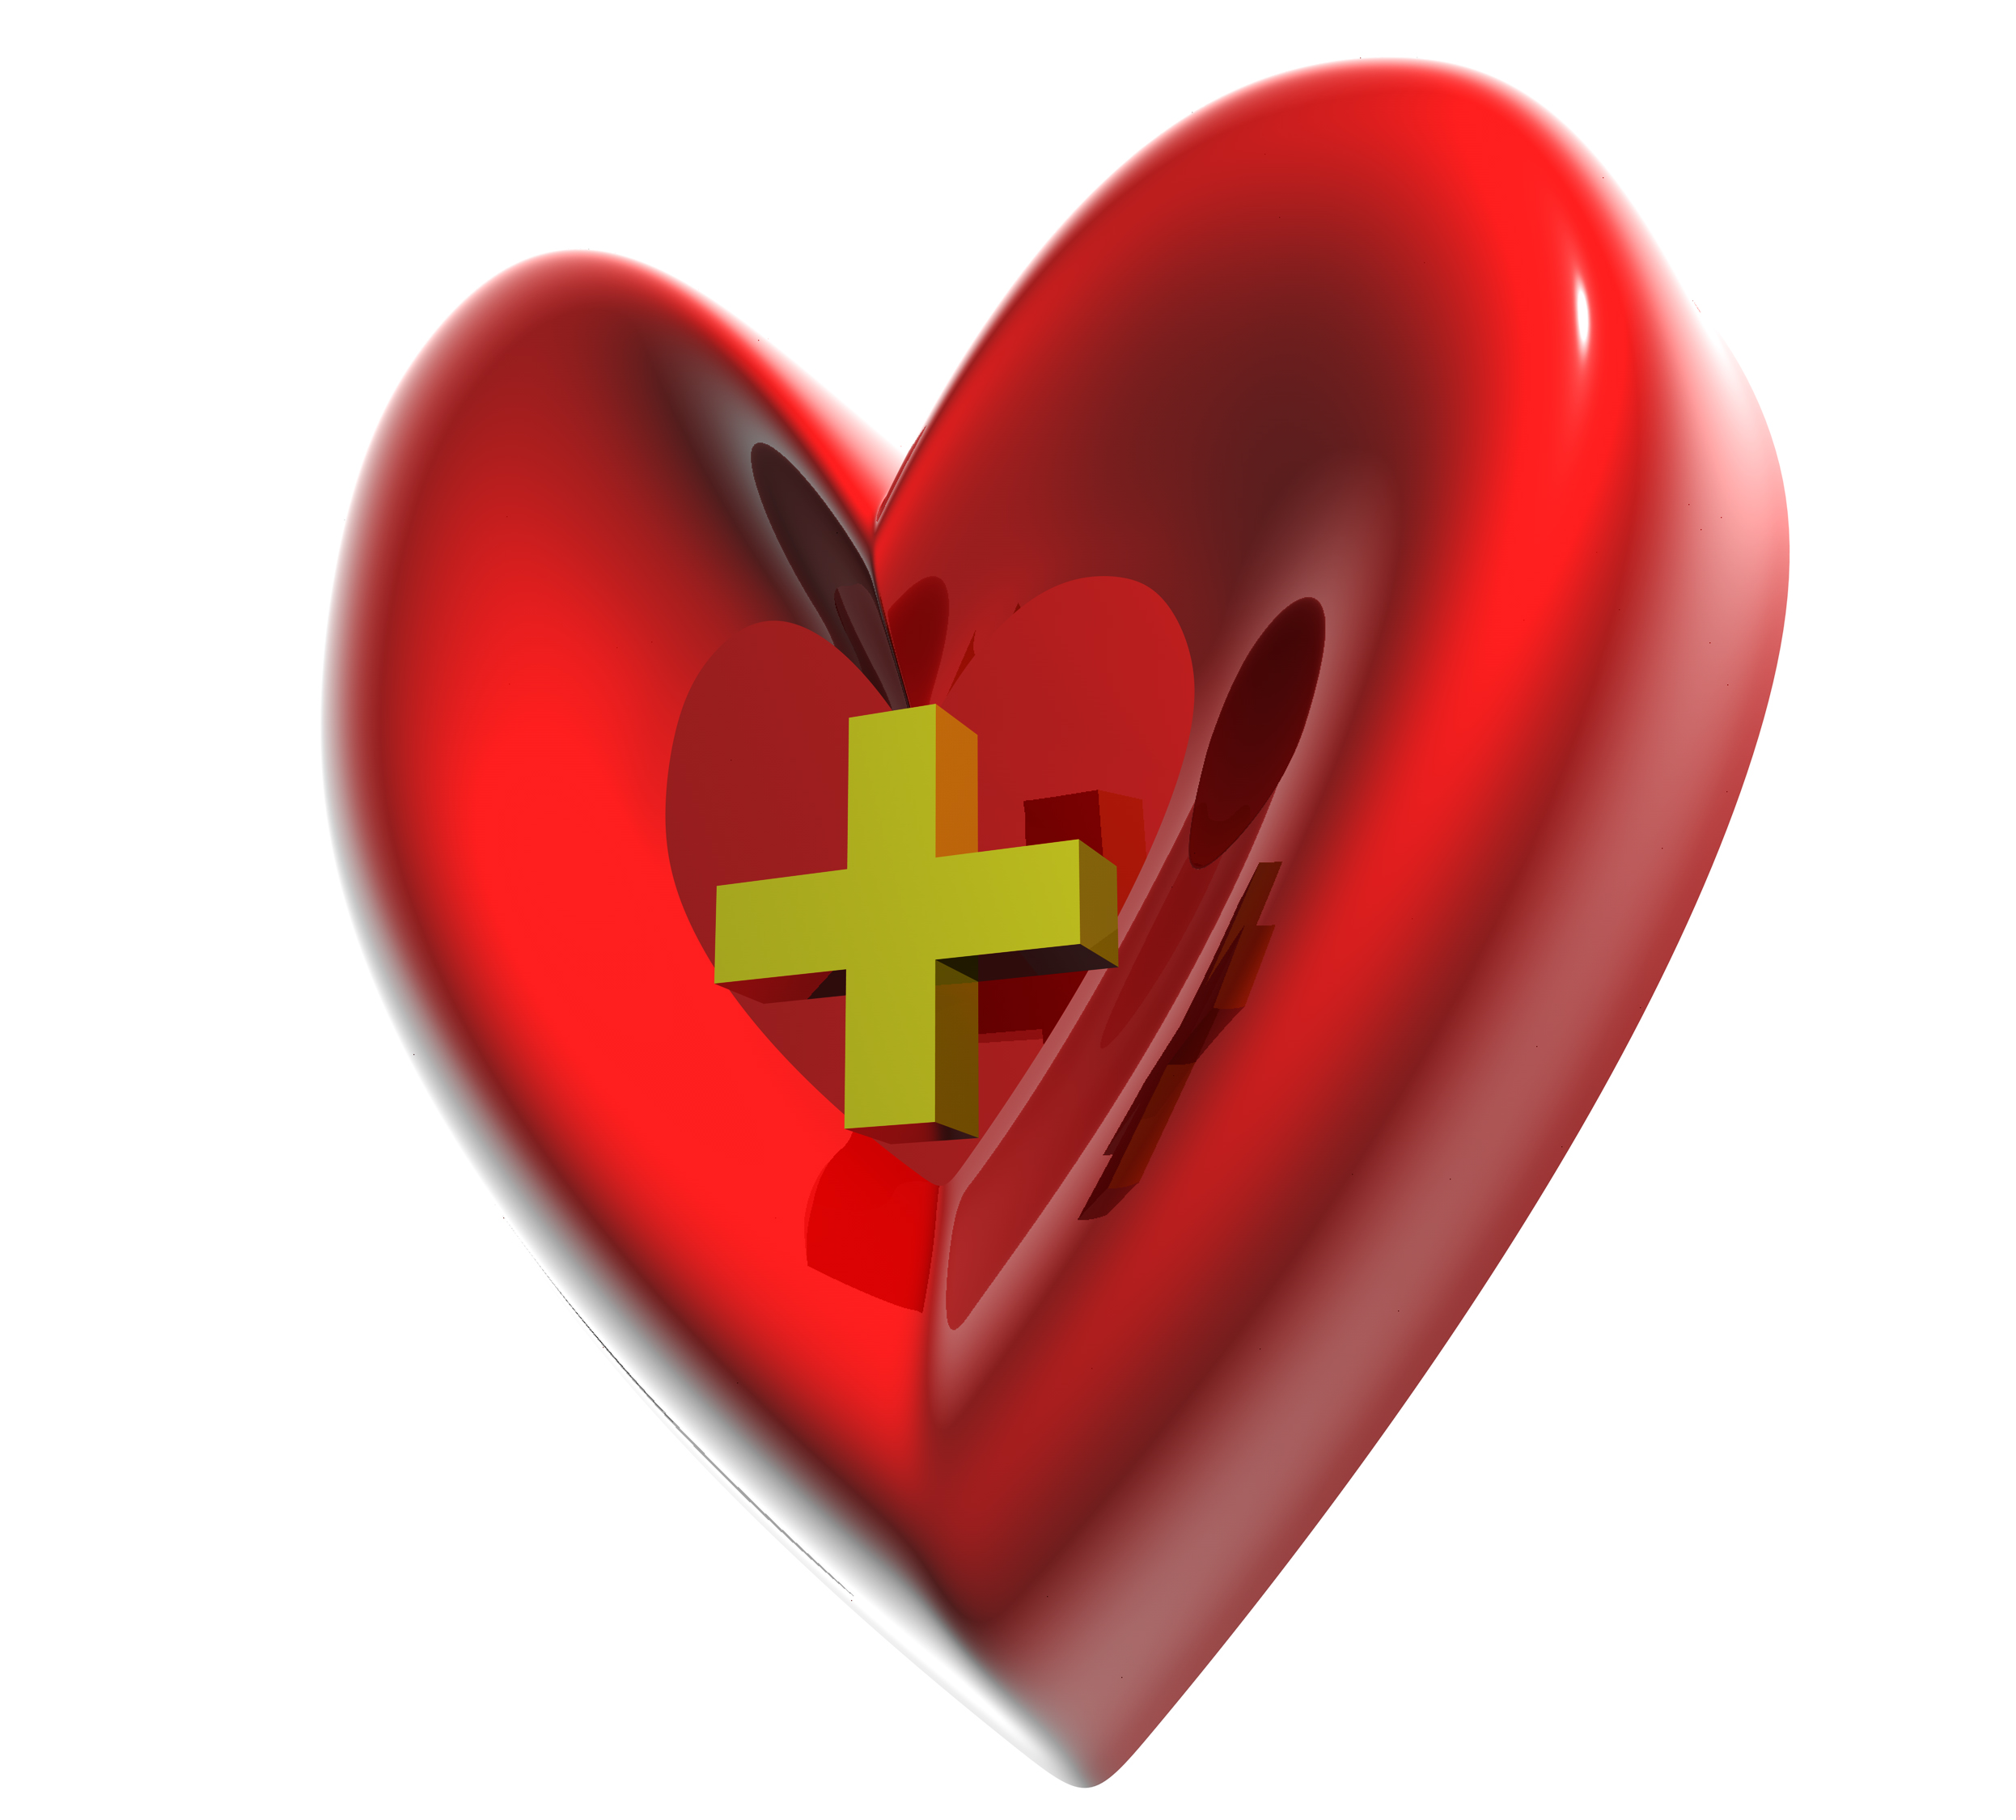 CPR & AED (Automated External Defibrillator)